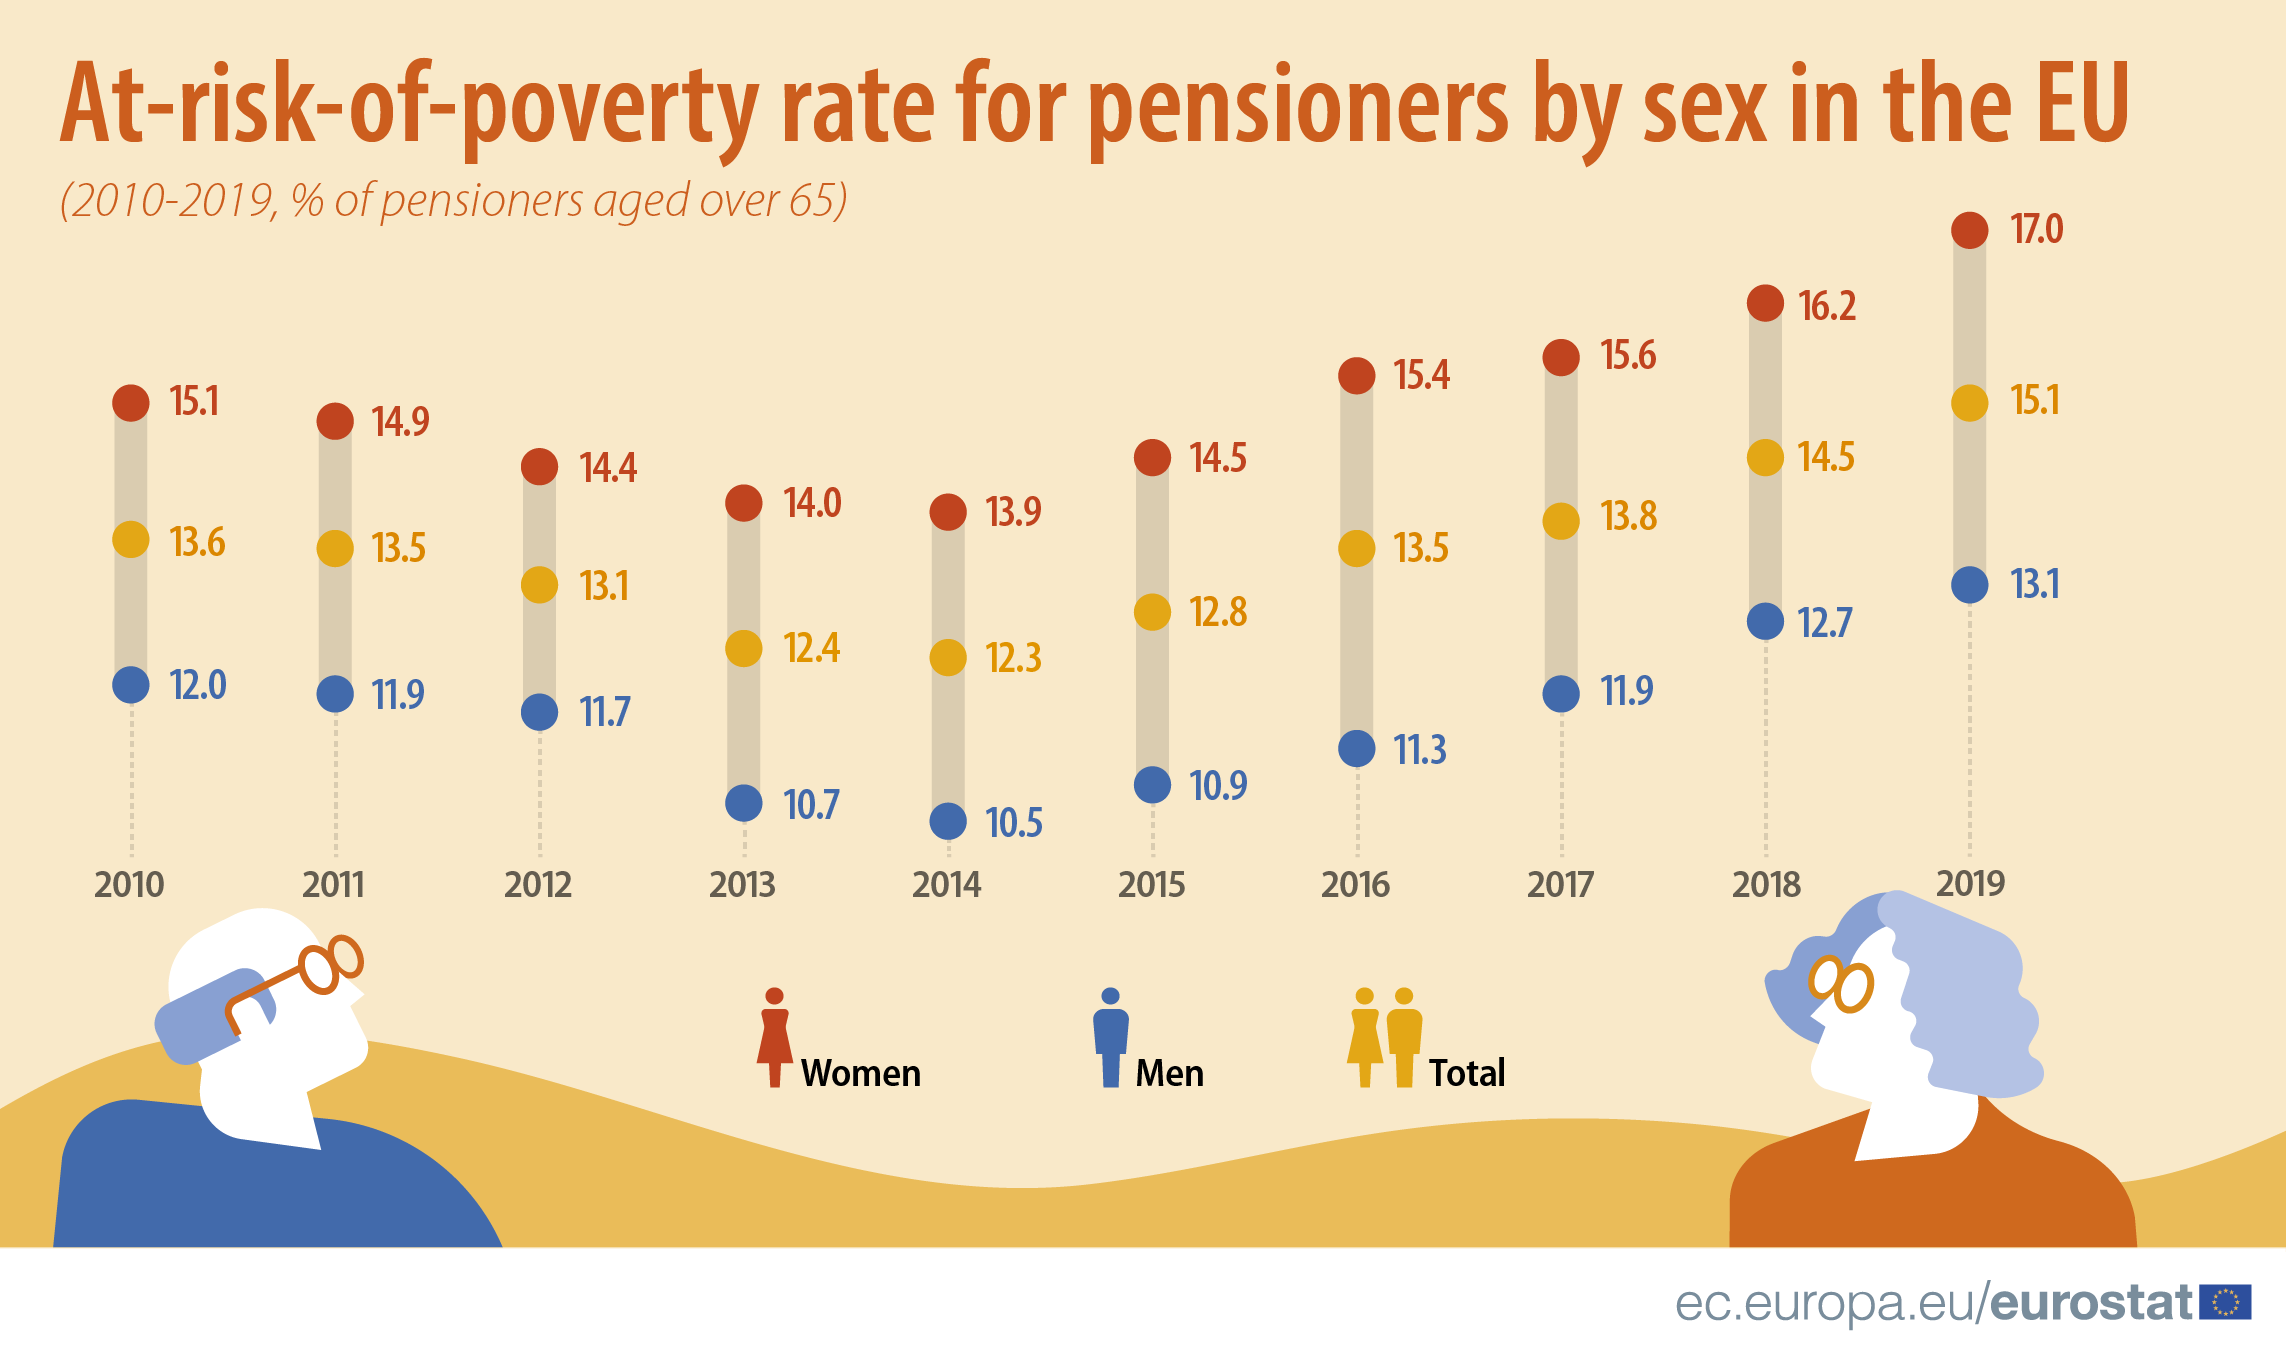 Infographic: At-risk-of-poverty rate for pensioners by sex in the EU